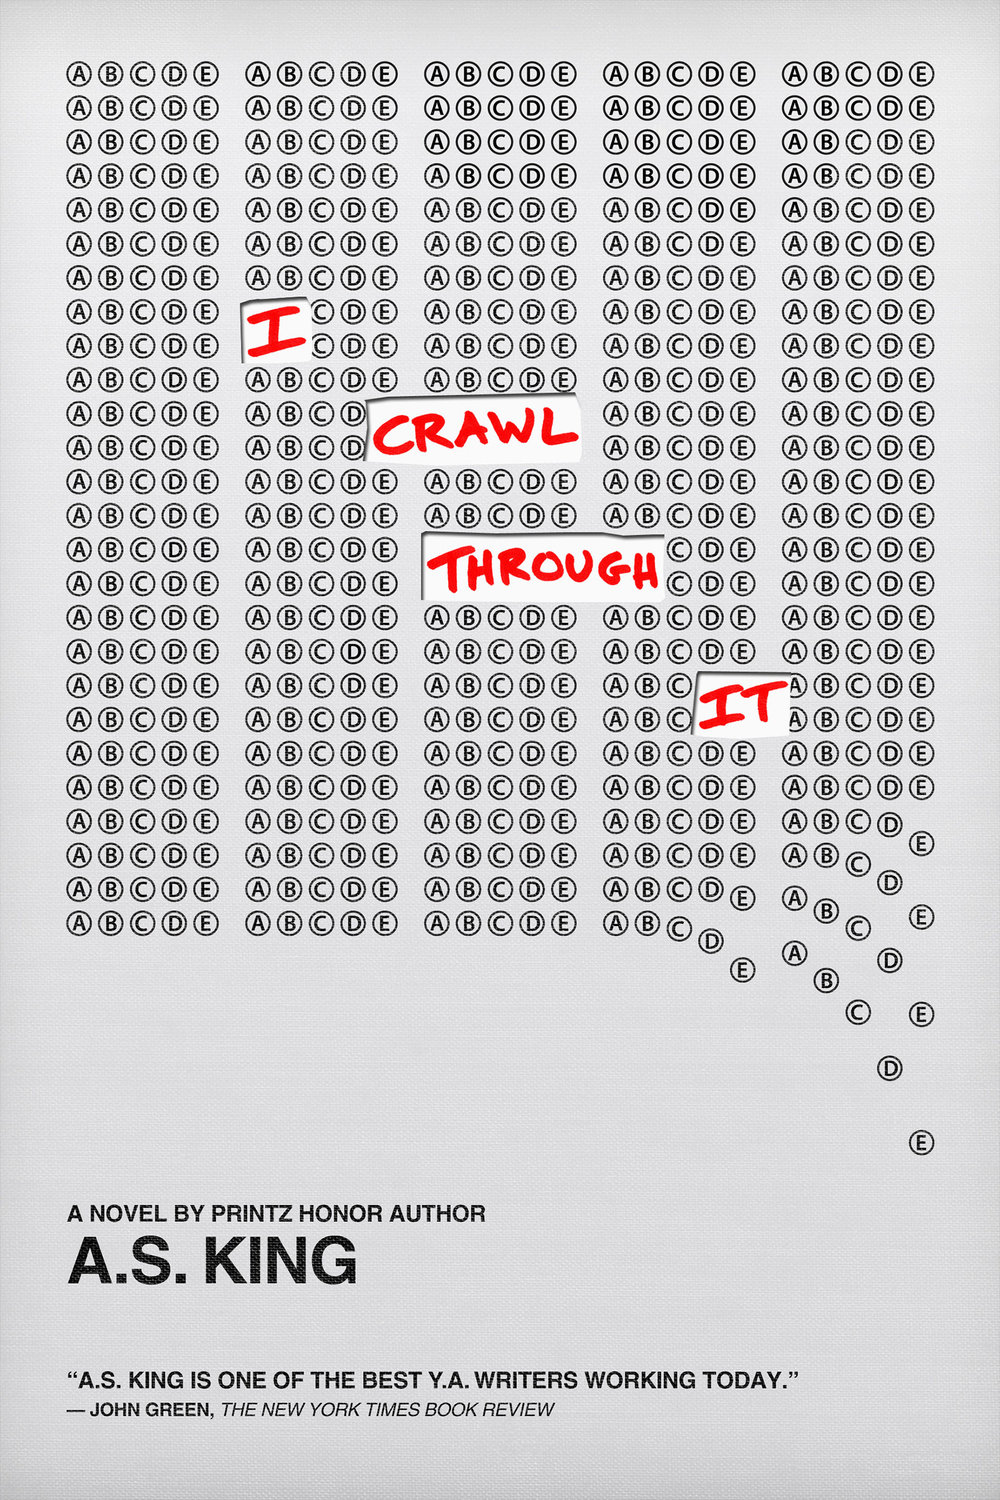 I Crawl Through It by A.S. King Designed by Ben Mautner for Hachette Art Directed by Liz Casal